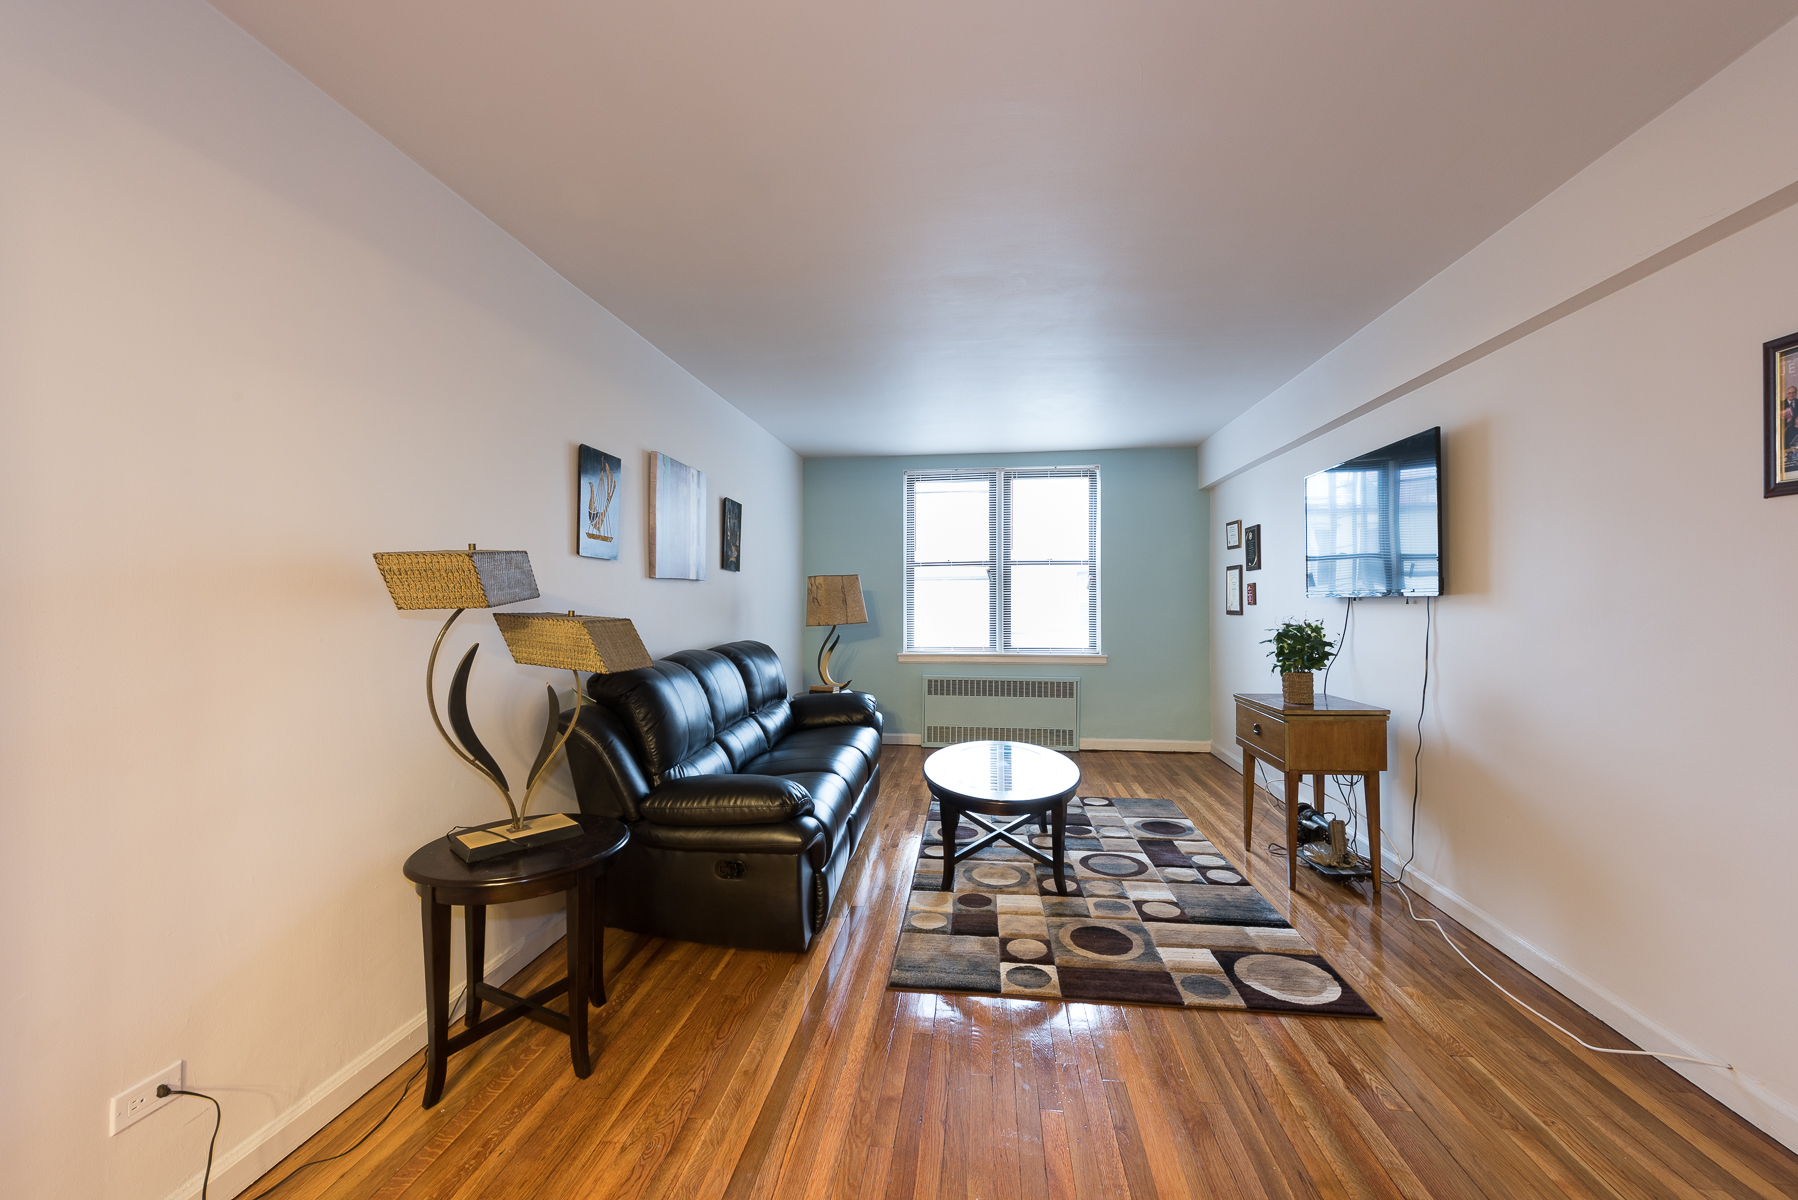 Property For Sale at Open House by Appointment. Call 917.414.6344. Large Move-in Ready 2 BR